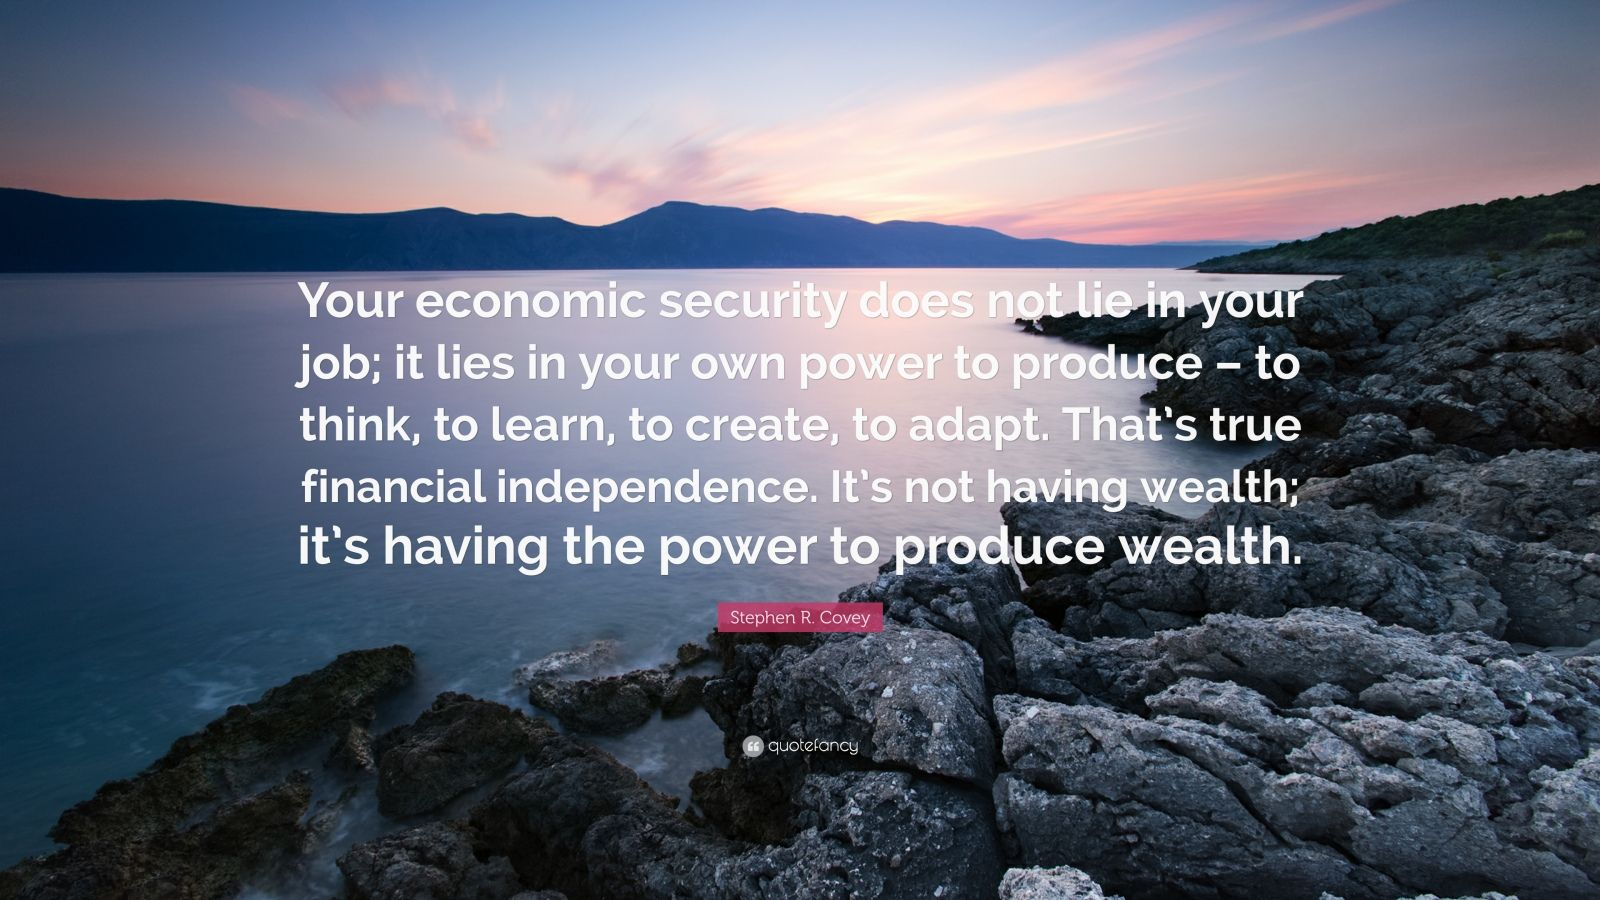 """Stephen R. Covey Quote: """"Your economic security does not lie in your job; it lies in your own power to produce – to think, to learn, to create, to adapt. That's true financial independence. It's not having wealth; it's having the power to produce wealth."""""""